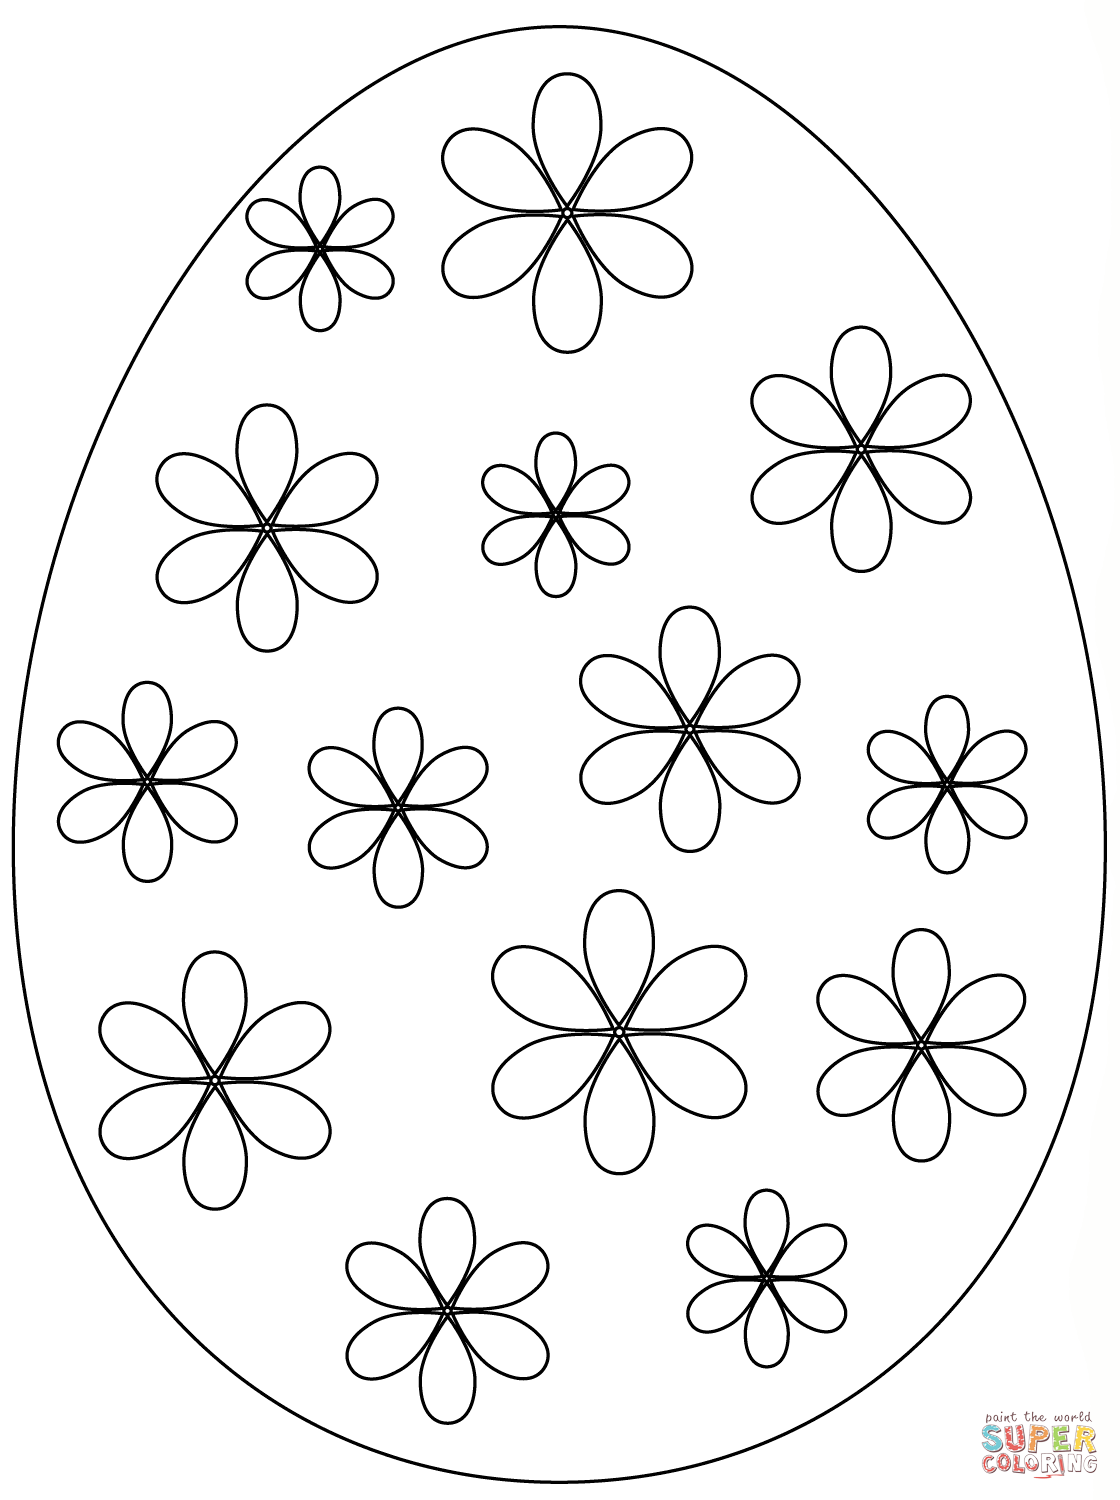 Easter Egg With Flowers Coloring Page